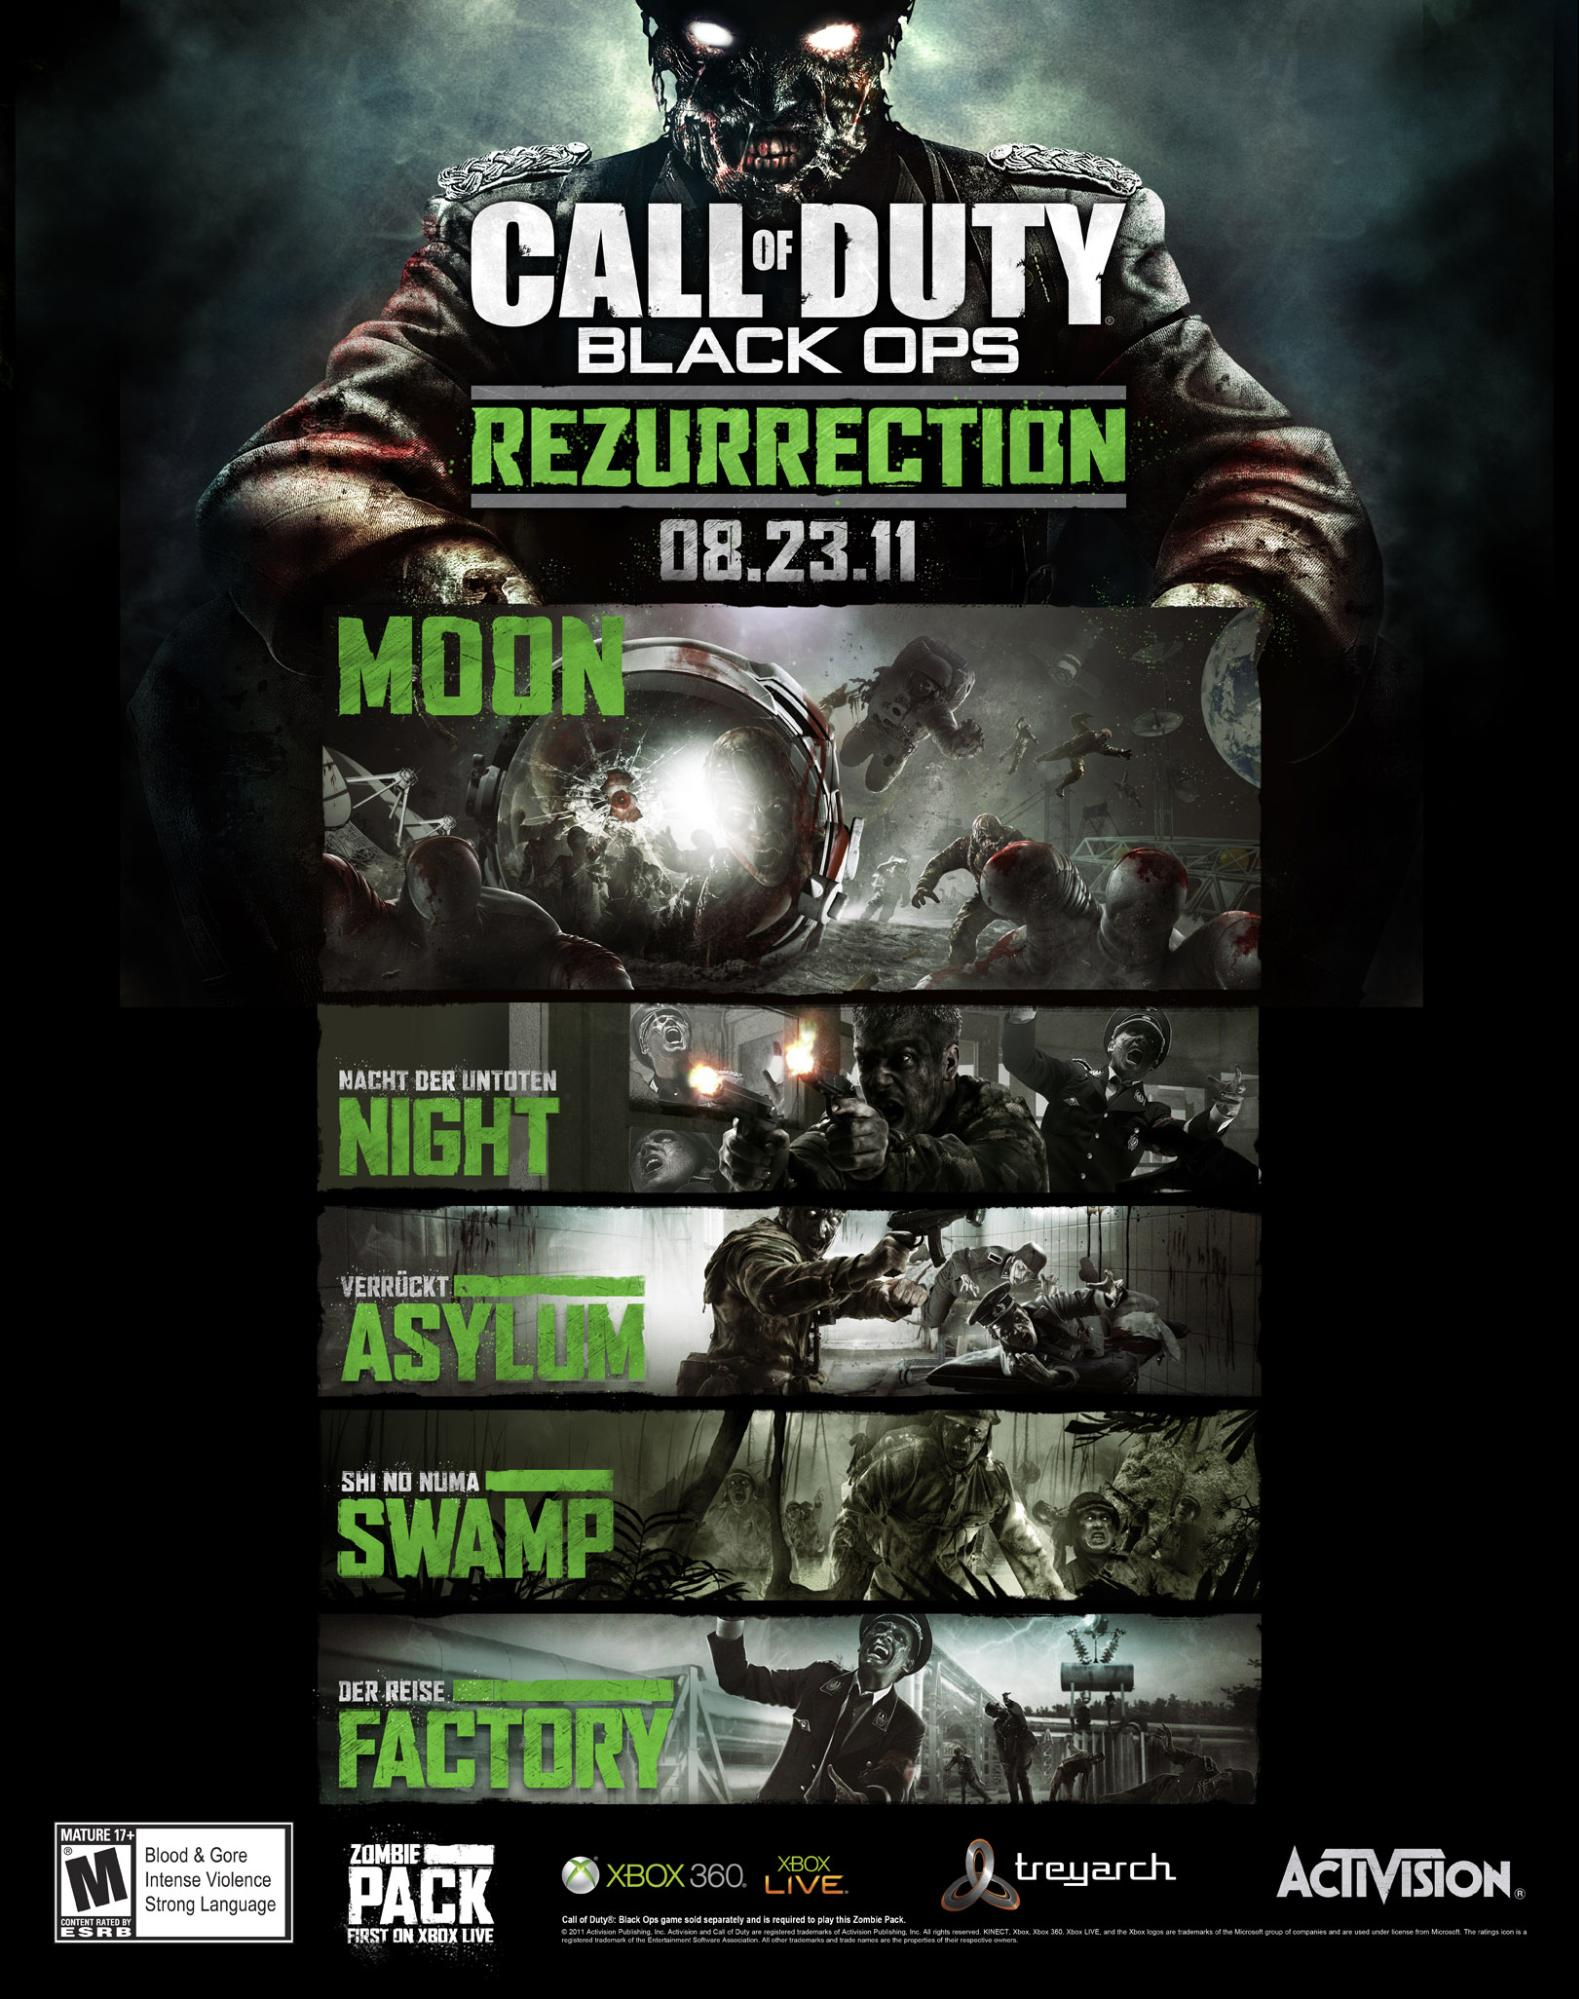 Rezurrection | Call of Duty Wiki | Fandom on call of duty black ops zombies pack, black ops rezurrection map pack, call of duty escalation pack,